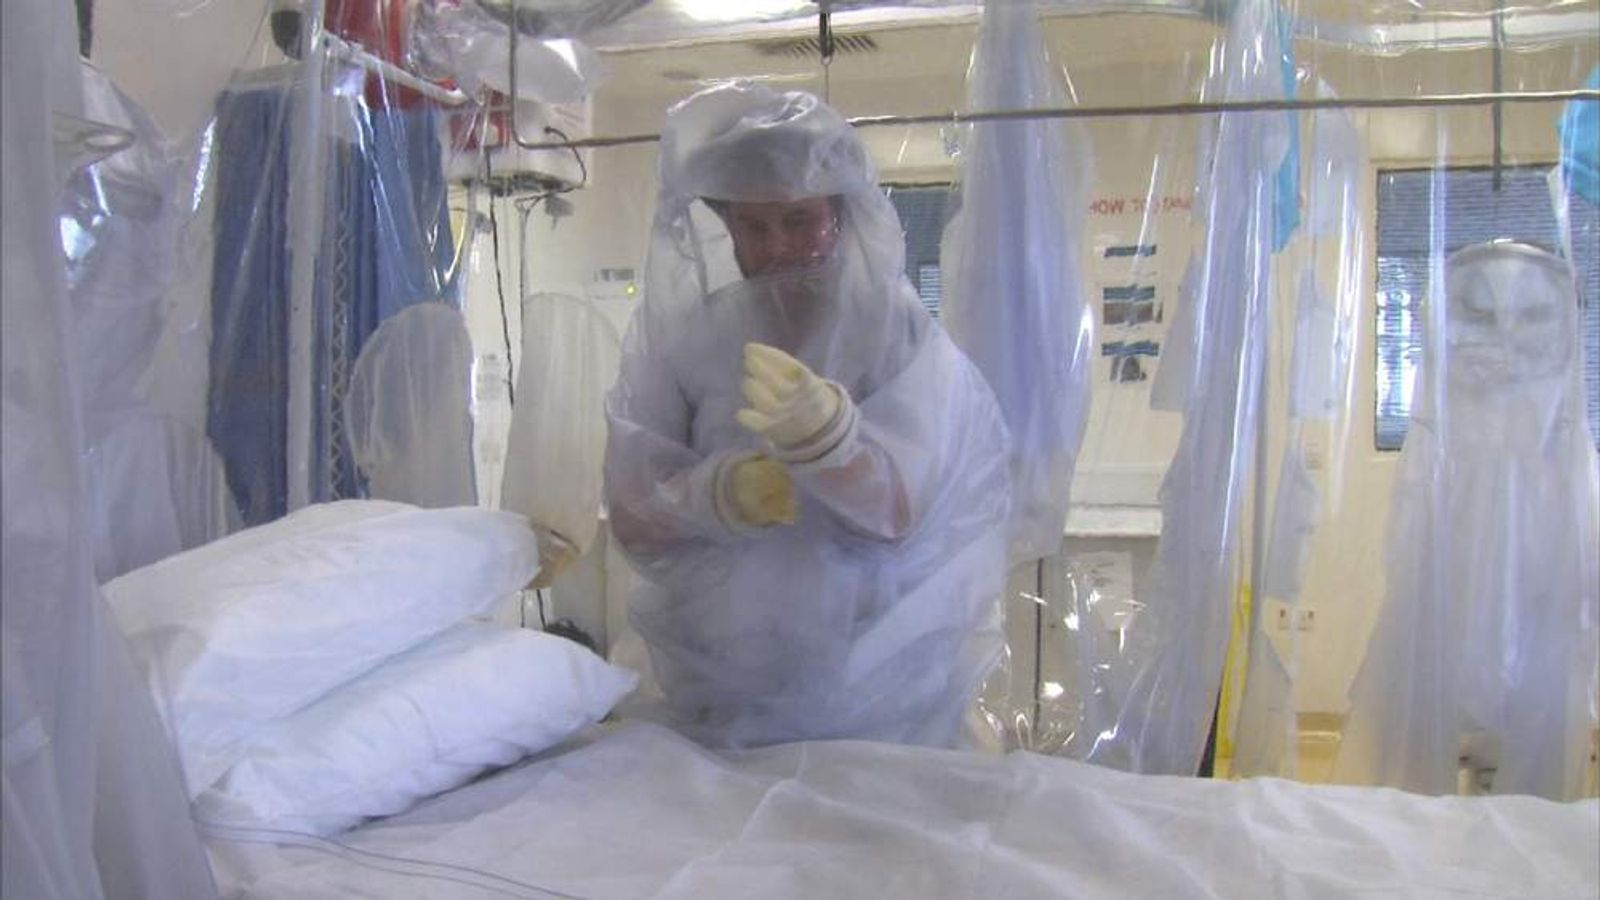 Hospitals prepare for an Ebola outbreak